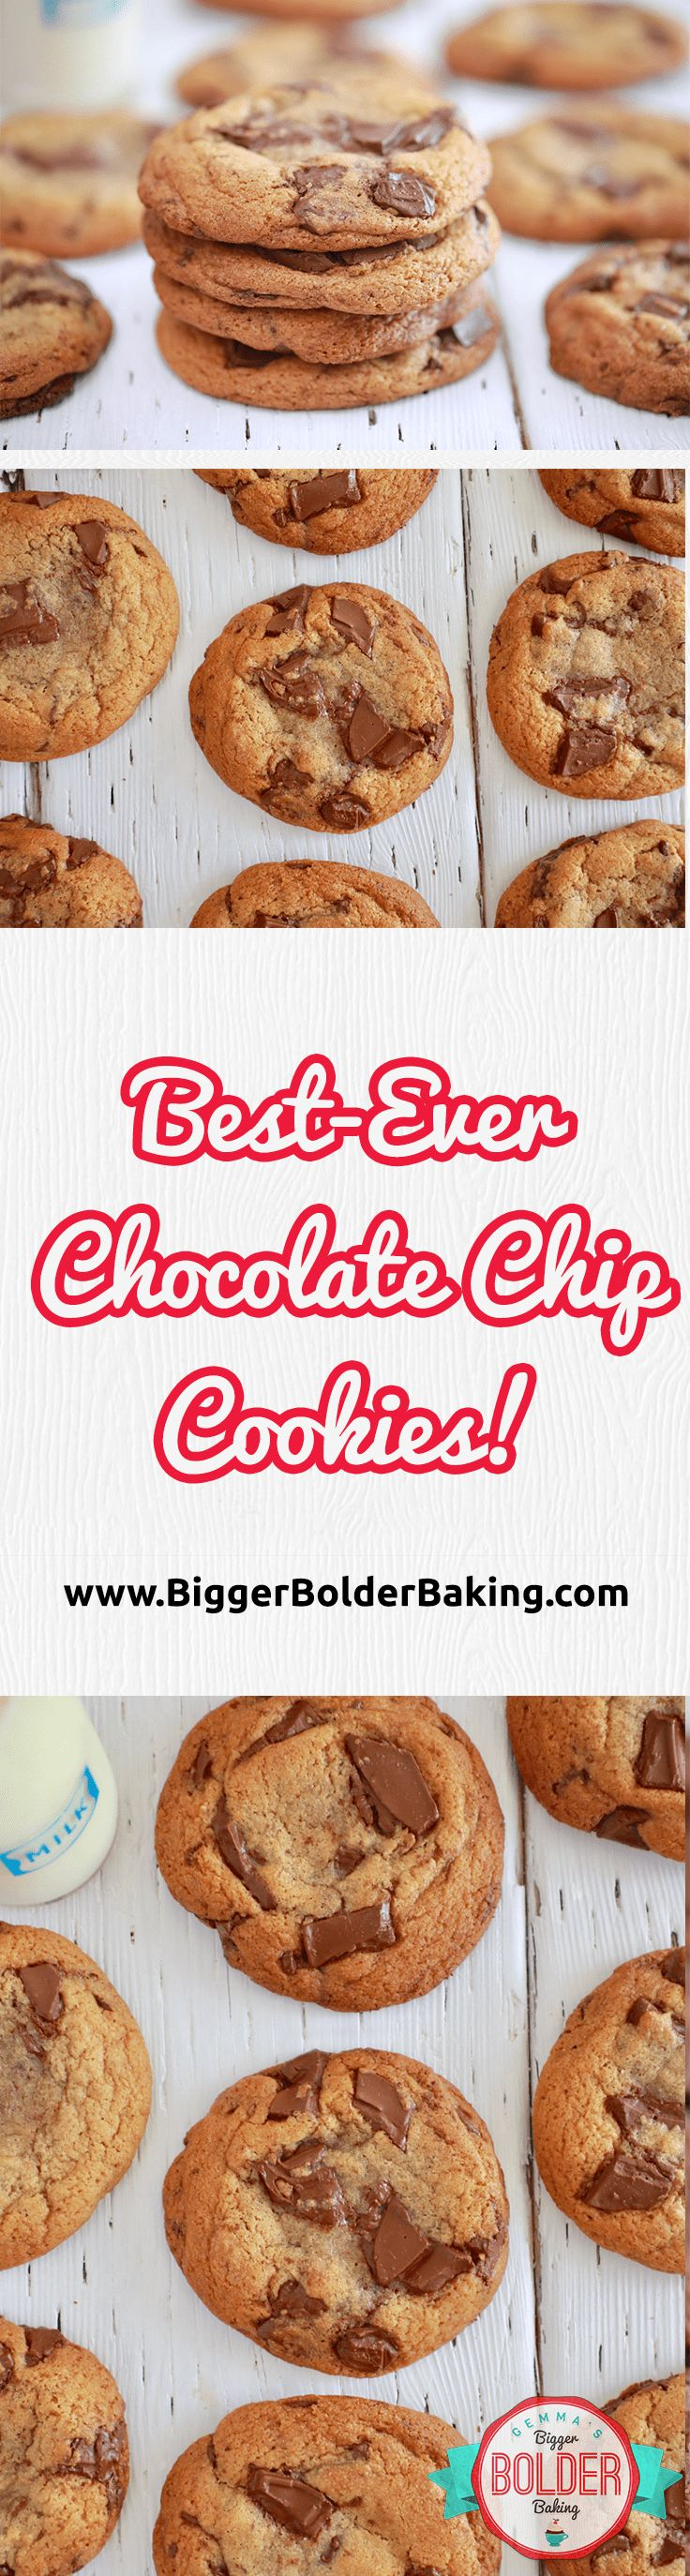 The Best Ever Chocolate Chip Cookies recipe that is taking the internet by storm! via @gemstafford